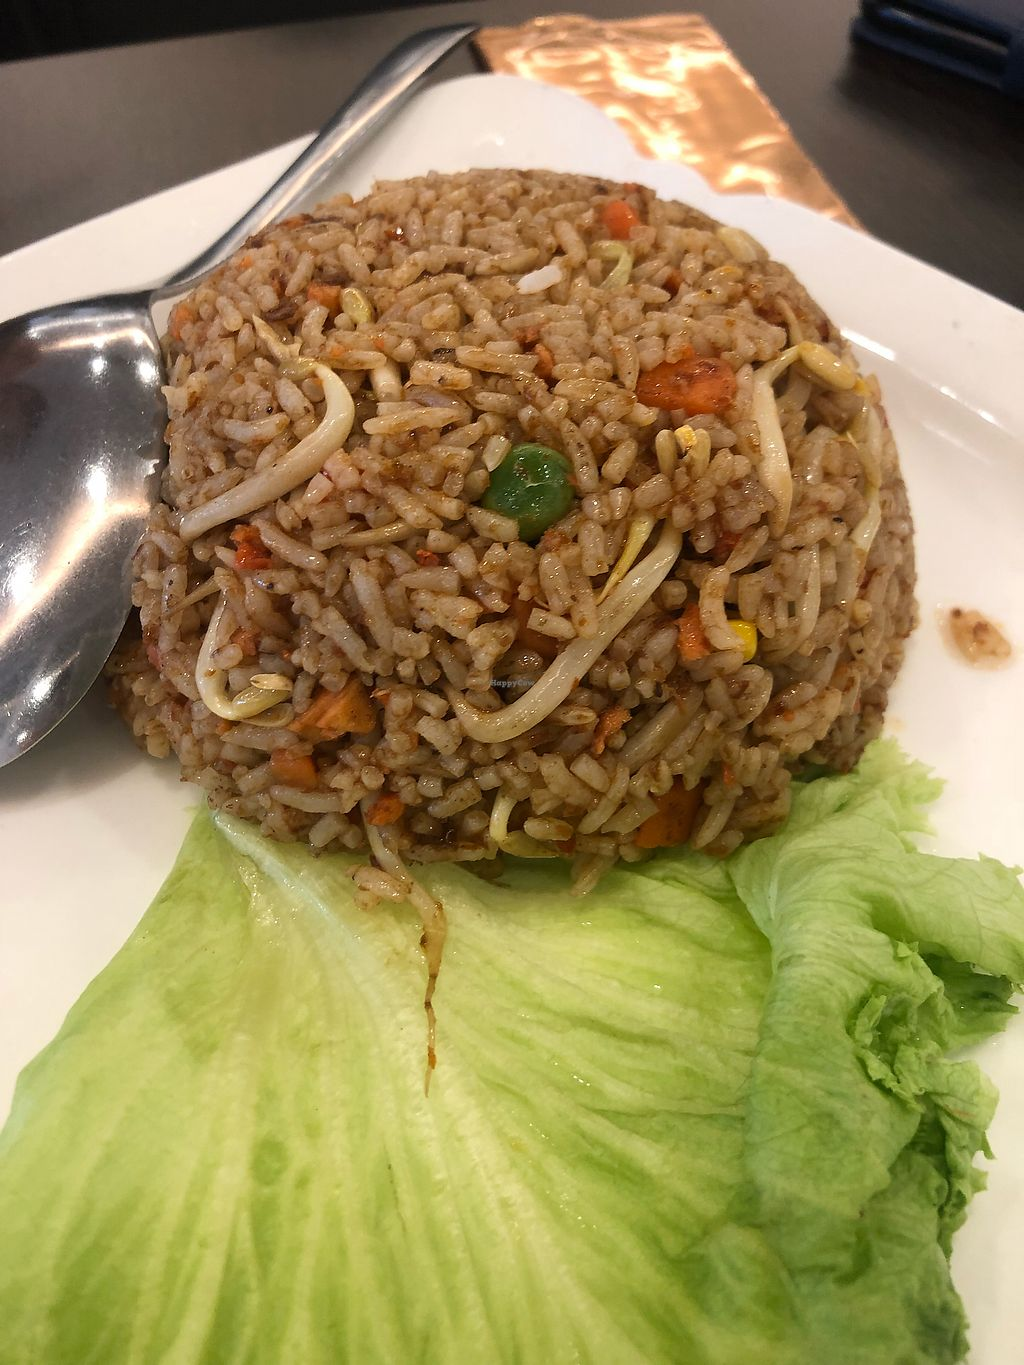 "Photo of Greenland Vegetarian Restaurant  by <a href=""/members/profile/AmyLeySzeThoo"">AmyLeySzeThoo</a> <br/>Sambal Fried Rice  <br/> April 10, 2018  - <a href='/contact/abuse/image/196/383107'>Report</a>"